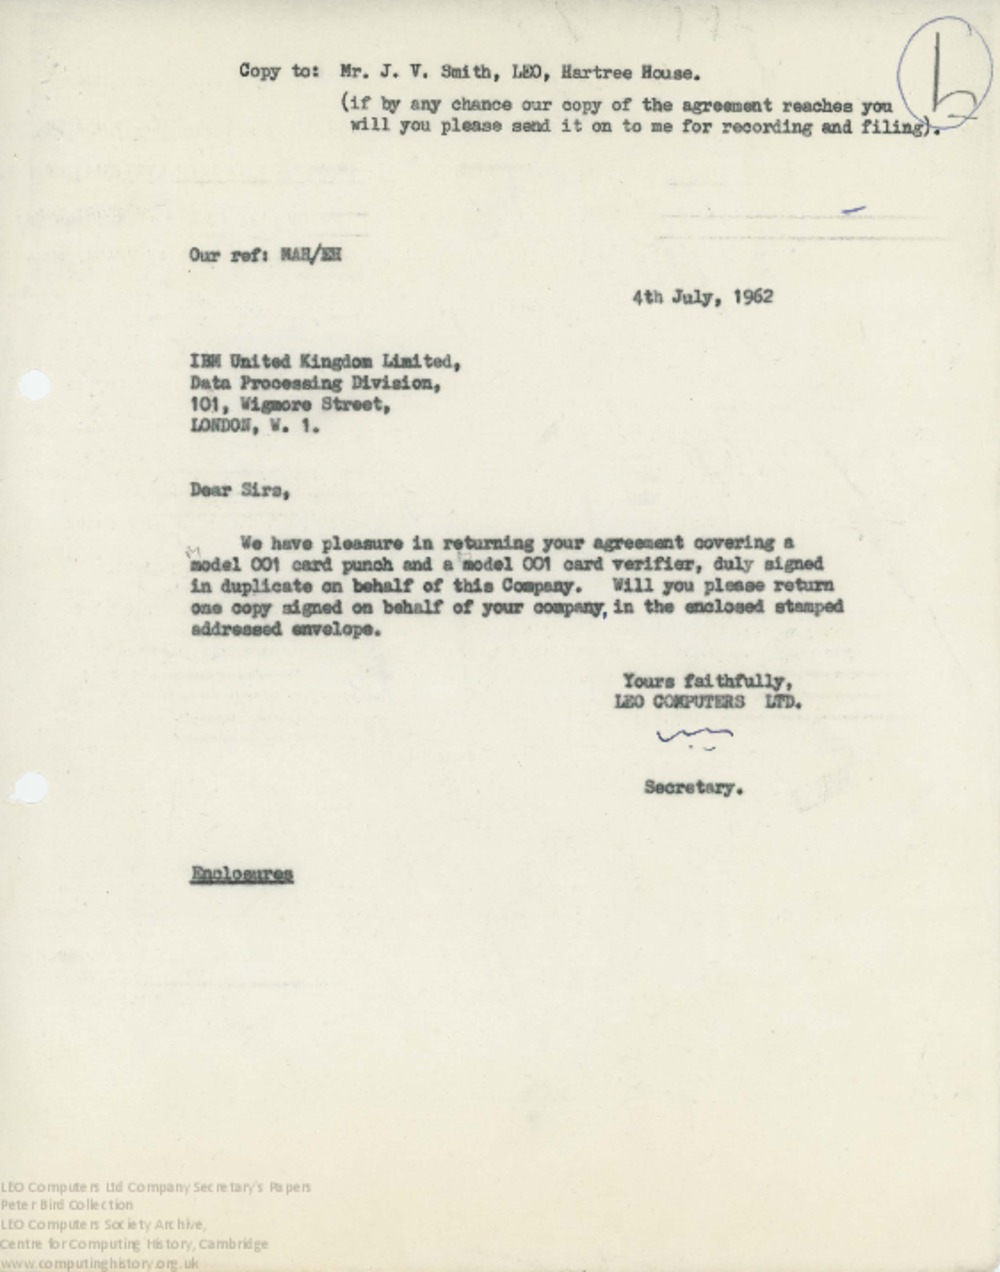 Article: 62867 IBM Equipment Hire Agreement, July 1962